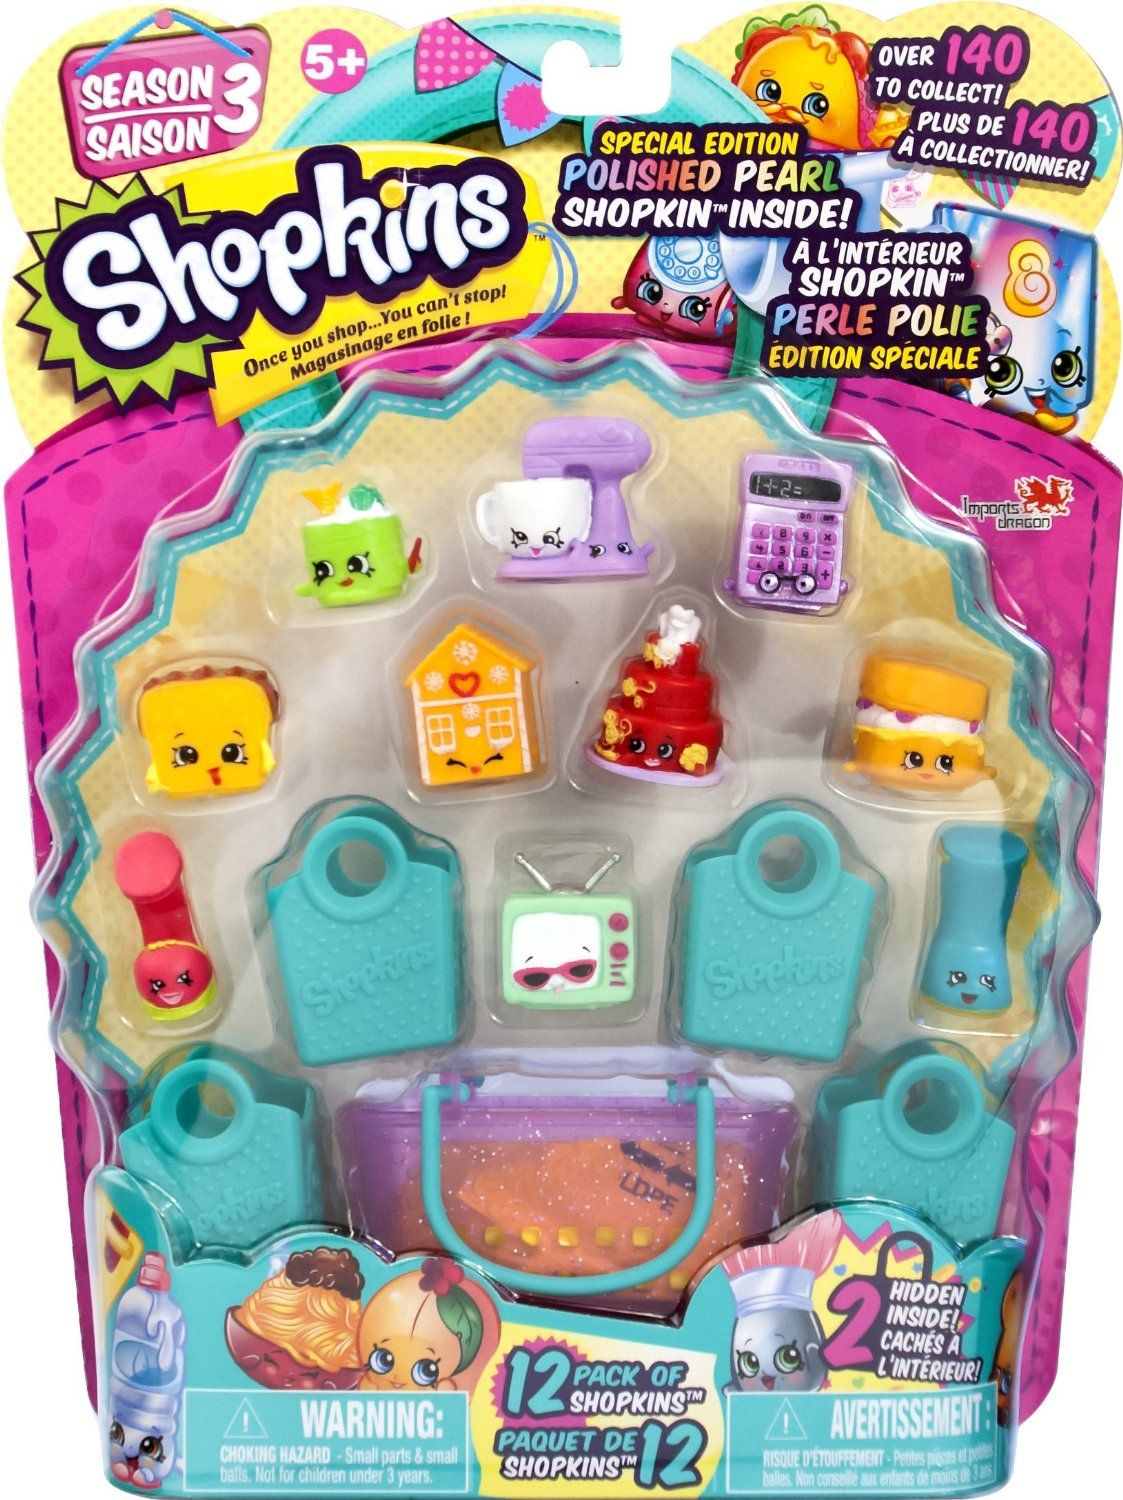 23 Shopkins 12 Pack S3 Playset, Playsets Amazon